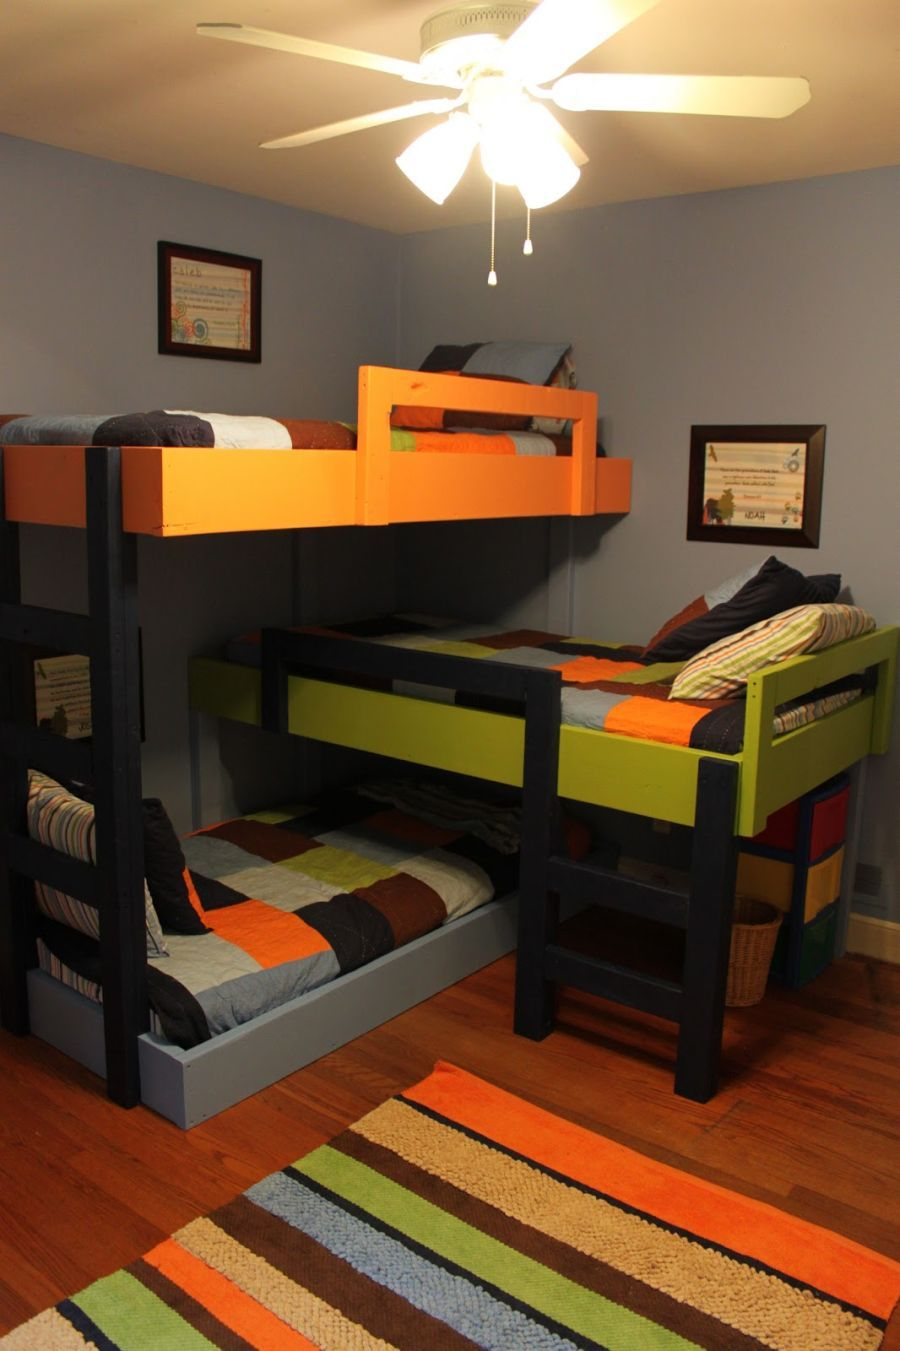 Saving Space And Staying Stylish With Triple Bunk Beds Diy Bunk